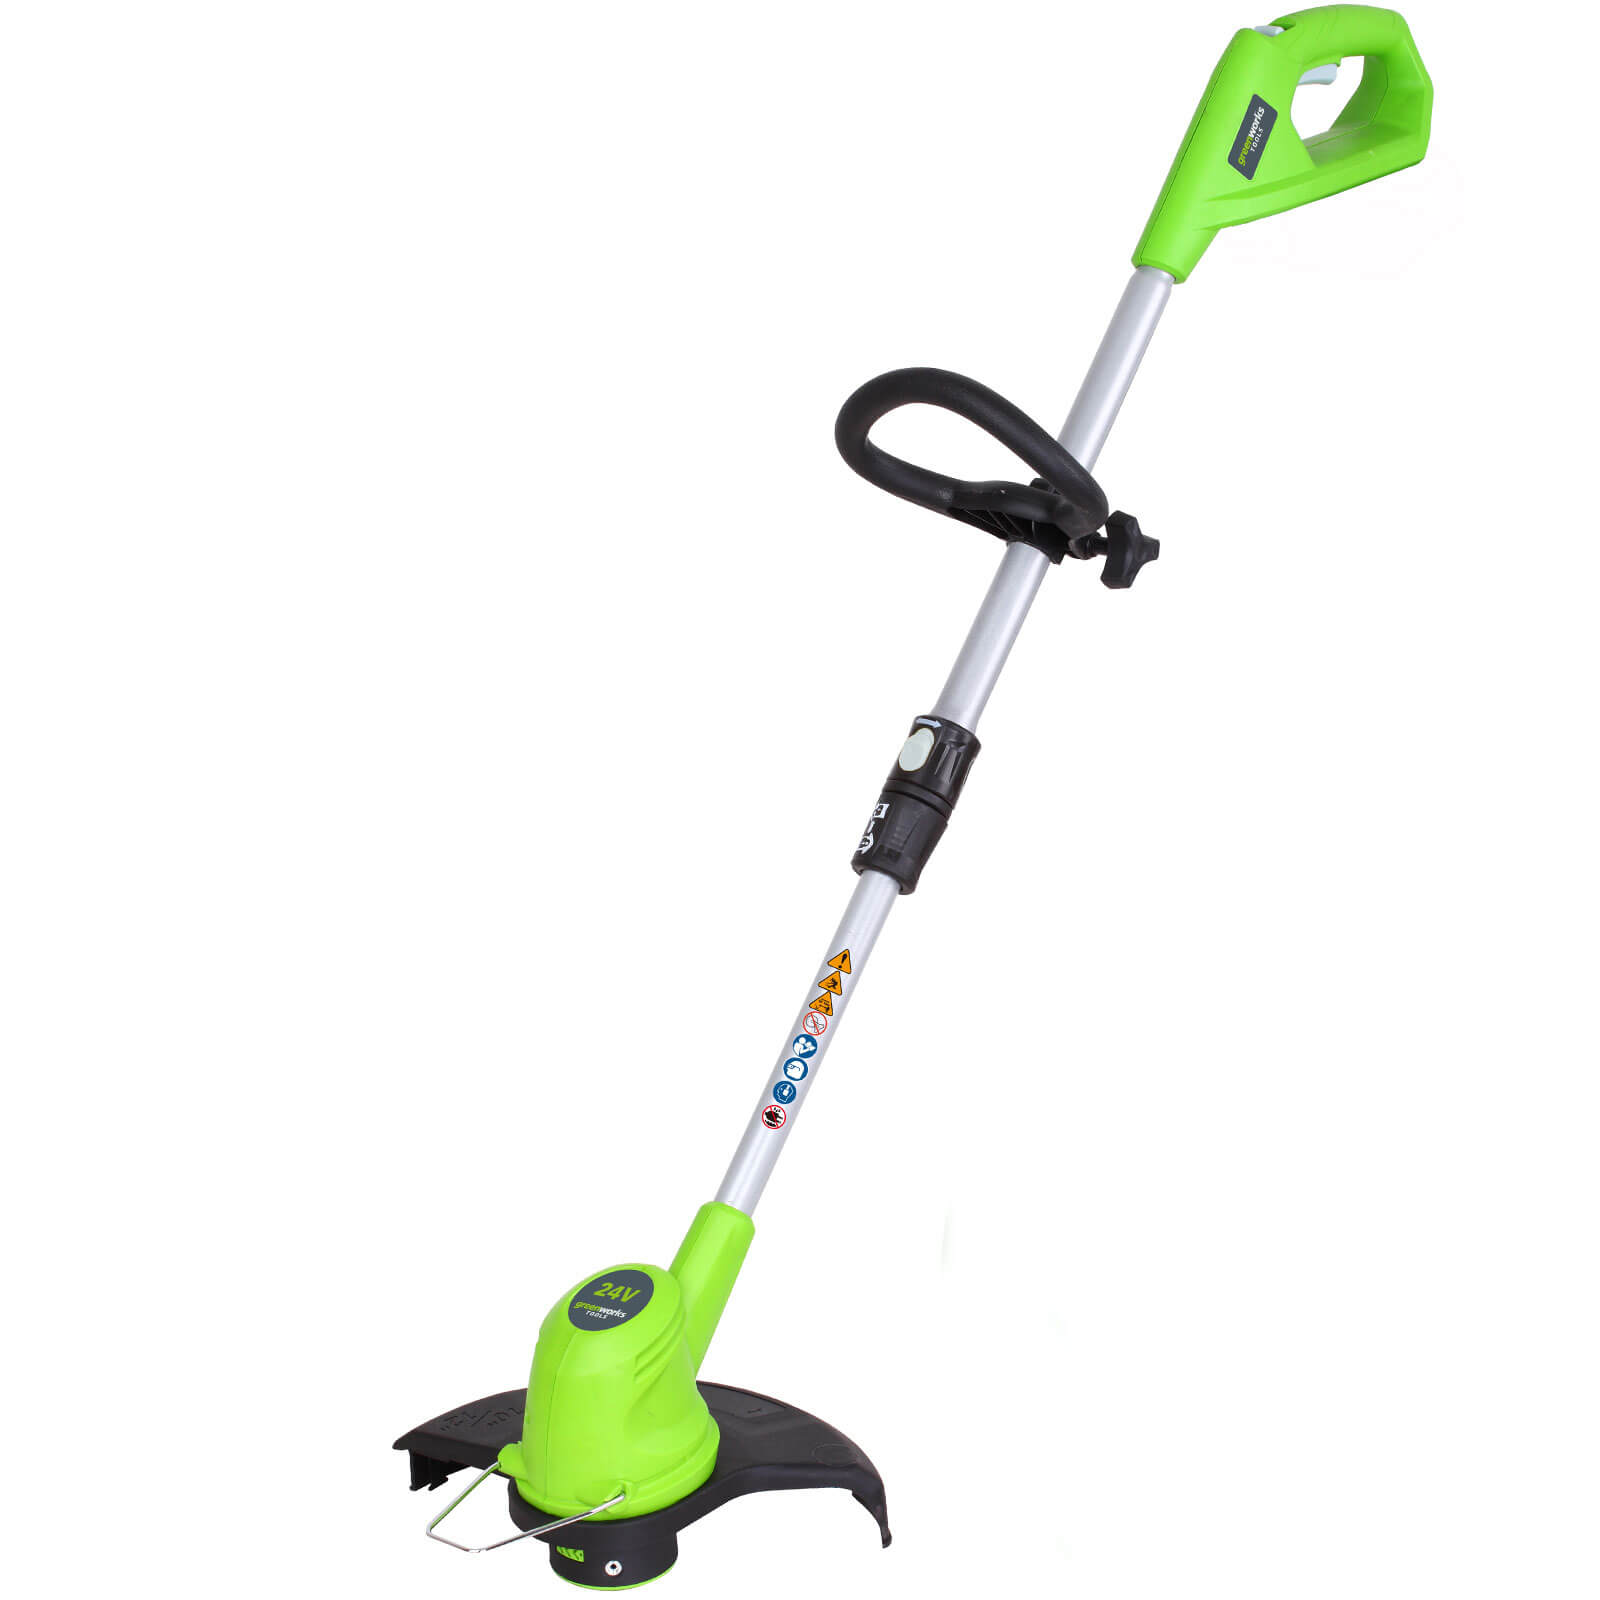 Buy cheap cordless grass trimmer compare garden tools for Affordable garden tools